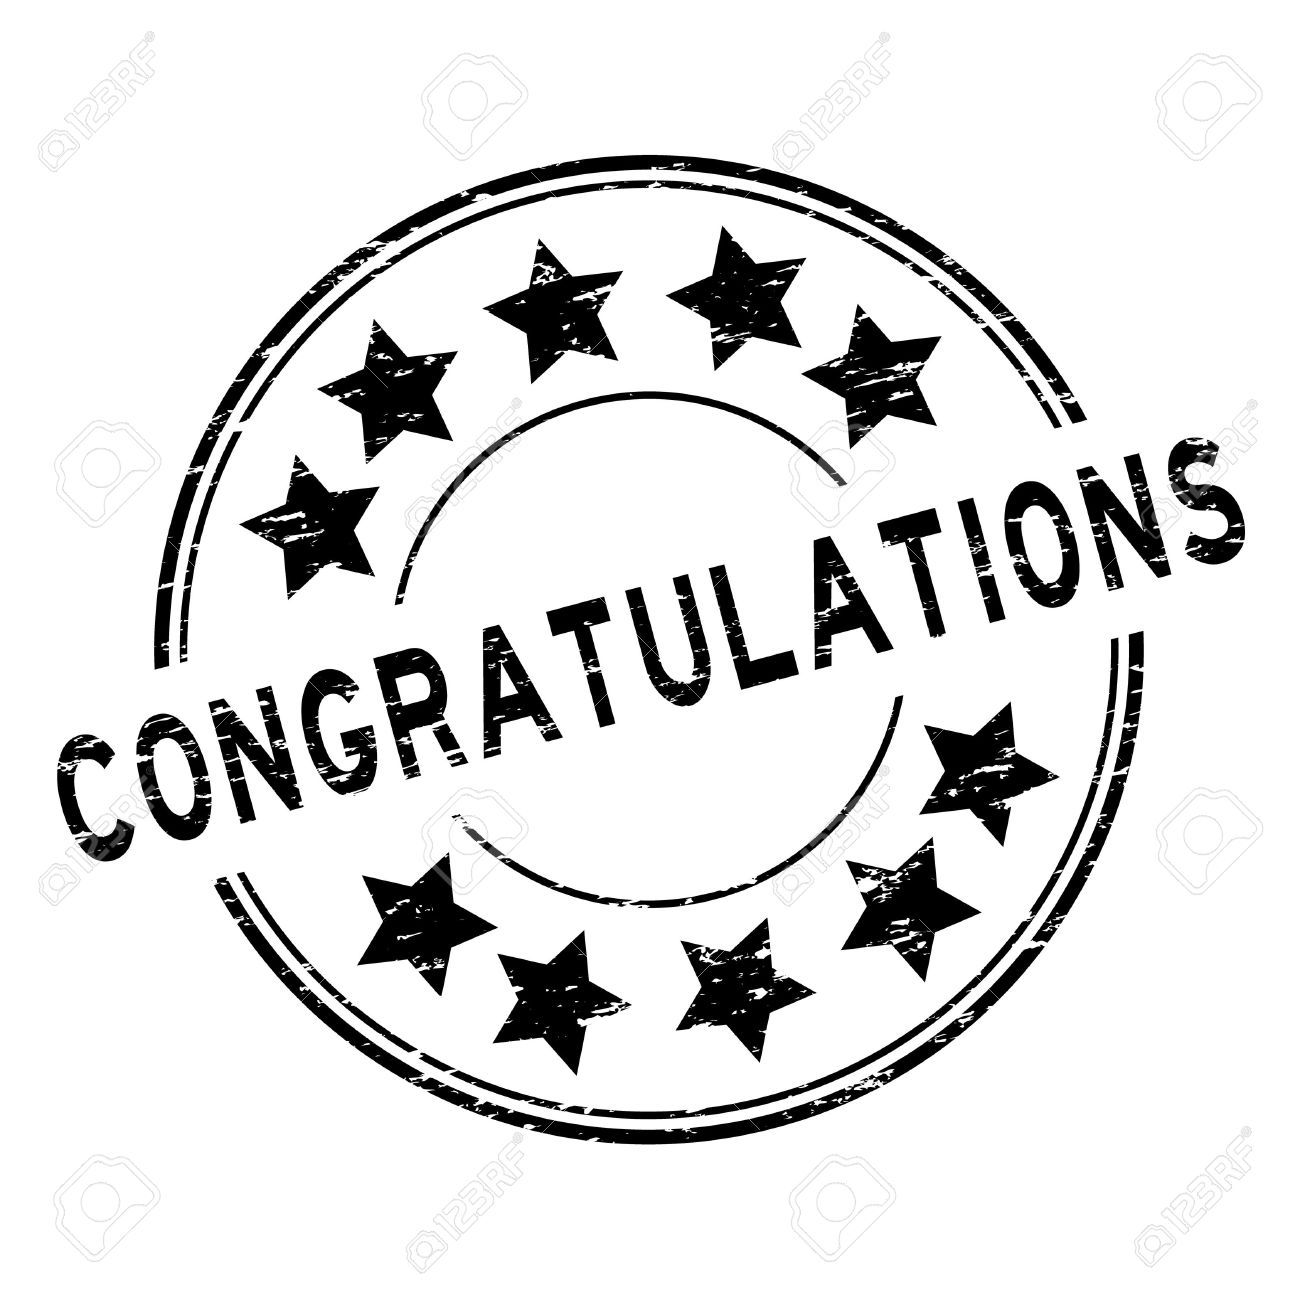 Congratulations clipart black and white 3 » Clipart Portal.